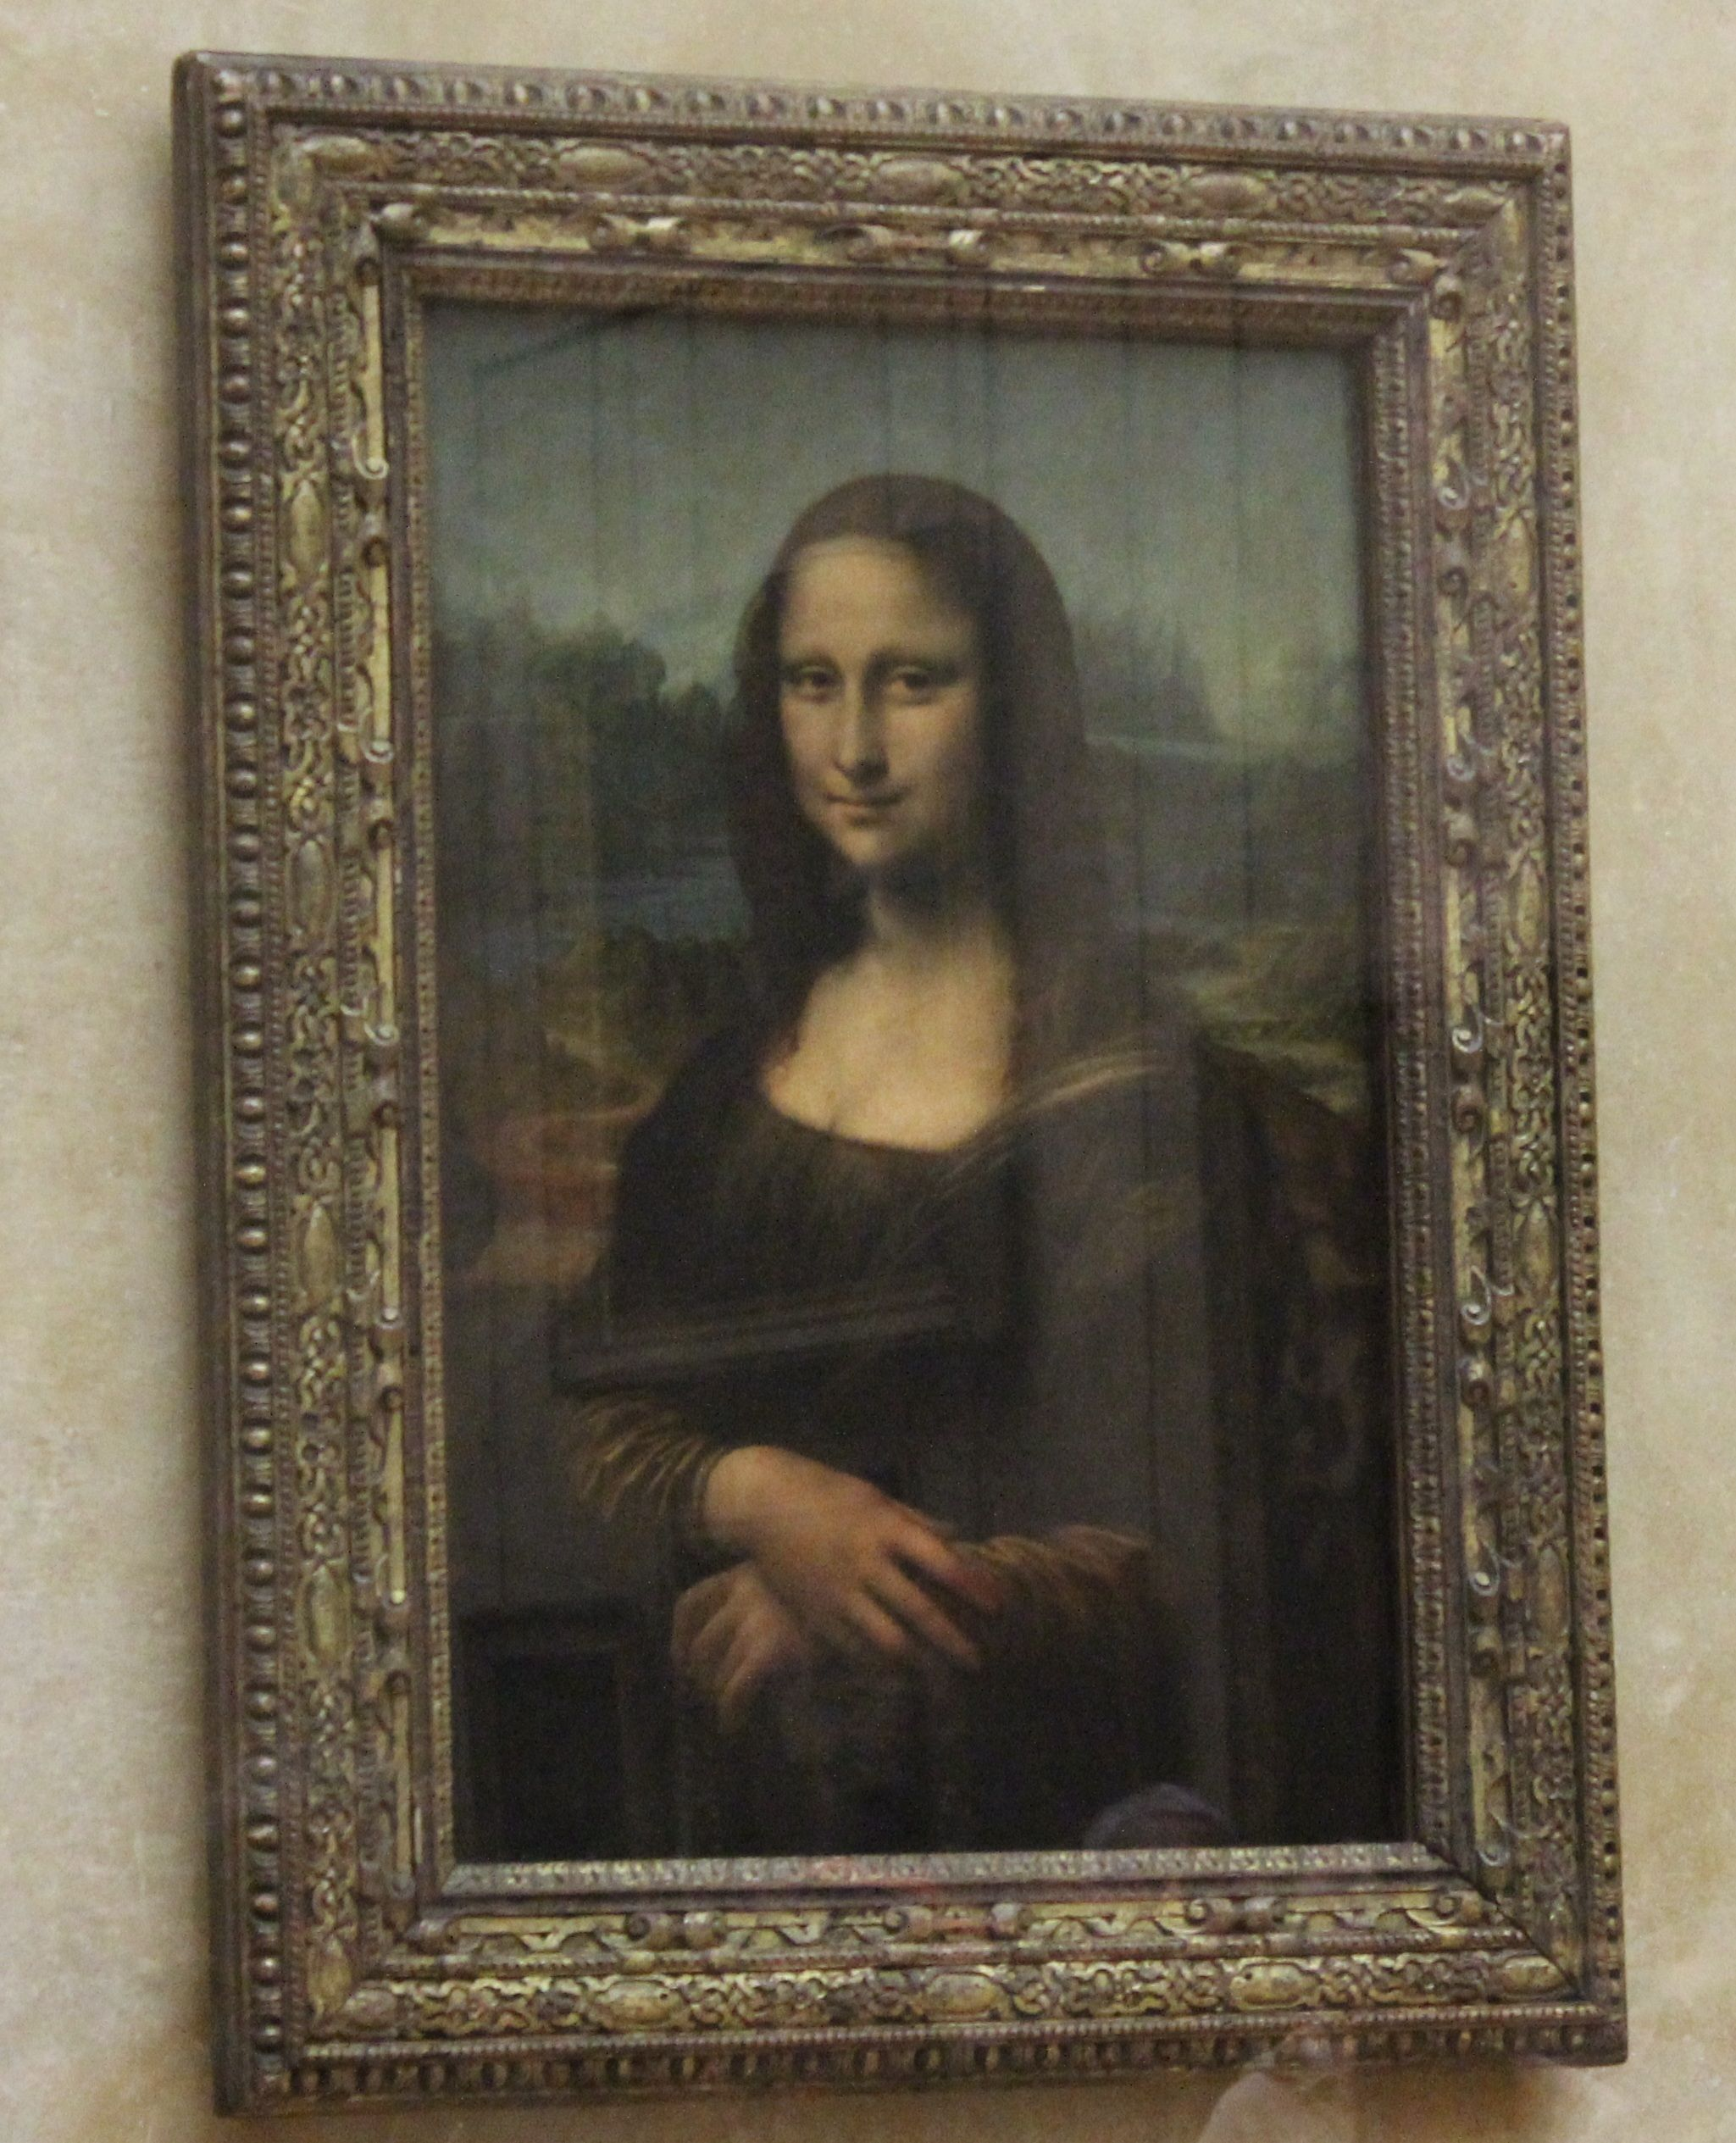 Mona Lisa In Mus Du Louvre - Paris France